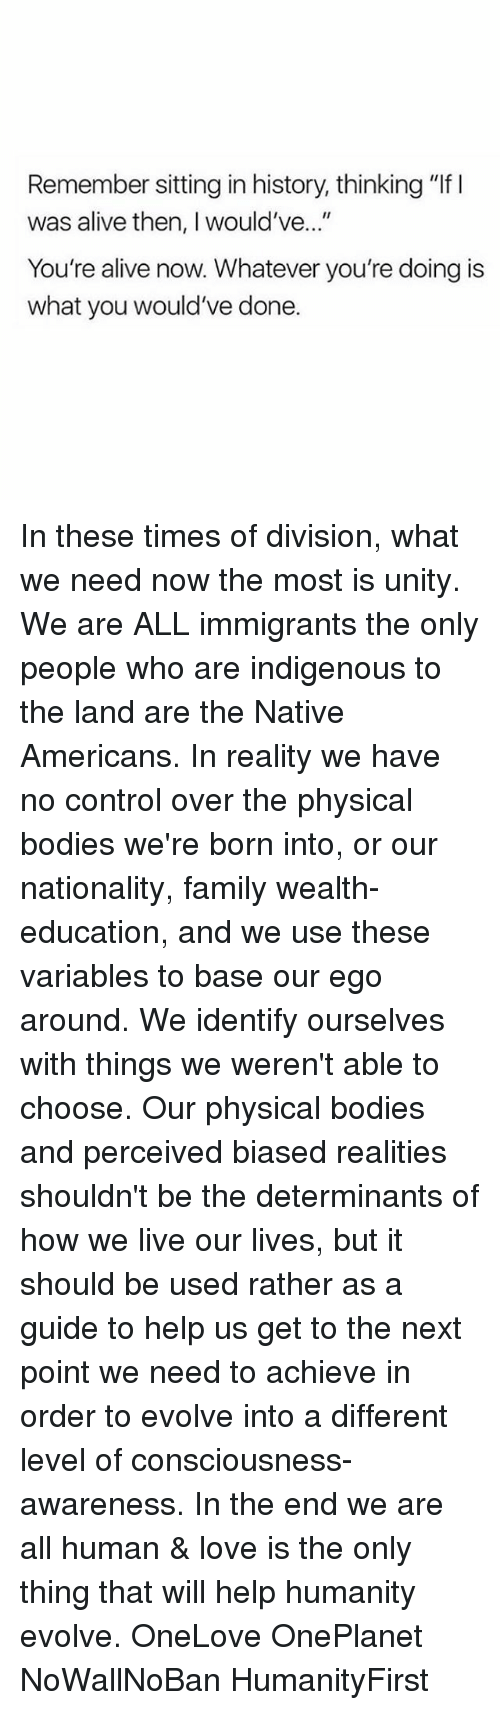 "Memes, Native American, and Evolve: Remember sitting in history, thinking ""lf l  was alive then, would've  You're alive now. Whatever you're doing is  what you would've done. In these times of division, what we need now the most is unity. We are ALL immigrants the only people who are indigenous to the land are the Native Americans. In reality we have no control over the physical bodies we're born into, or our nationality, family wealth- education, and we use these variables to base our ego around. We identify ourselves with things we weren't able to choose. Our physical bodies and perceived biased realities shouldn't be the determinants of how we live our lives, but it should be used rather as a guide to help us get to the next point we need to achieve in order to evolve into a different level of consciousness-awareness. In the end we are all human & love is the only thing that will help humanity evolve. OneLove OnePlanet NoWallNoBan HumanityFirst"